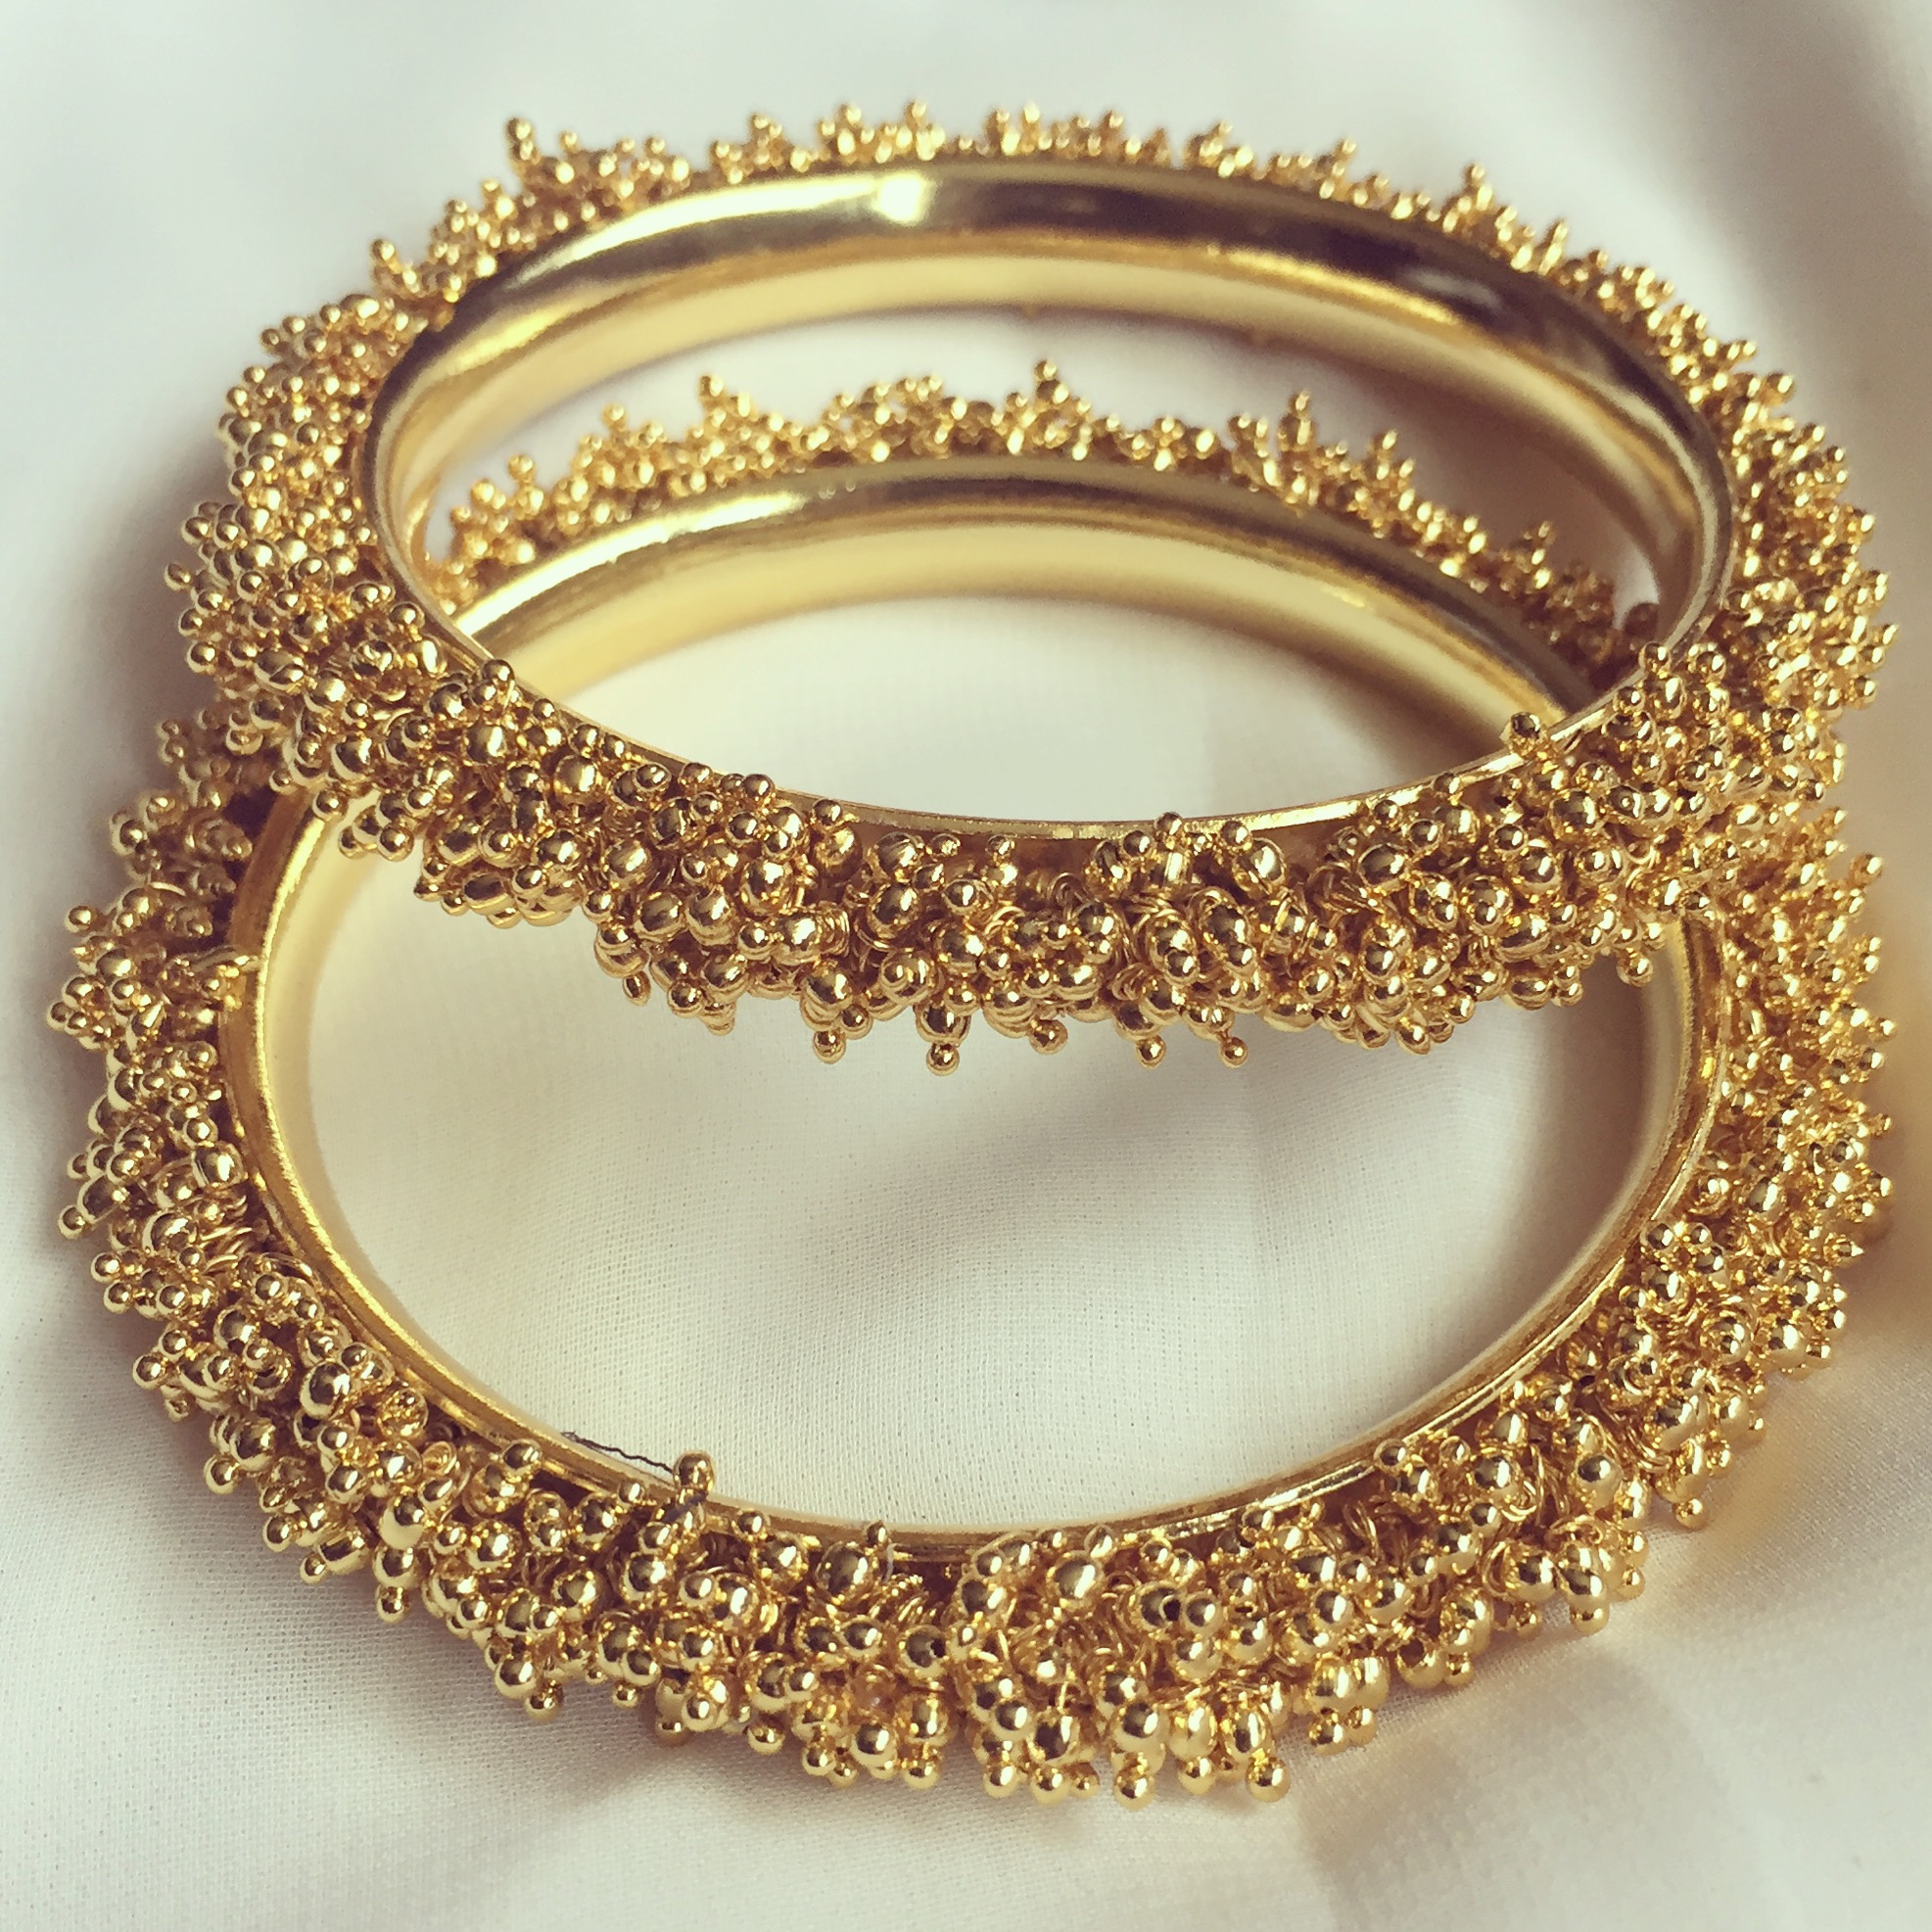 shop kolkata jeweller manik jewellery gold chand bangles